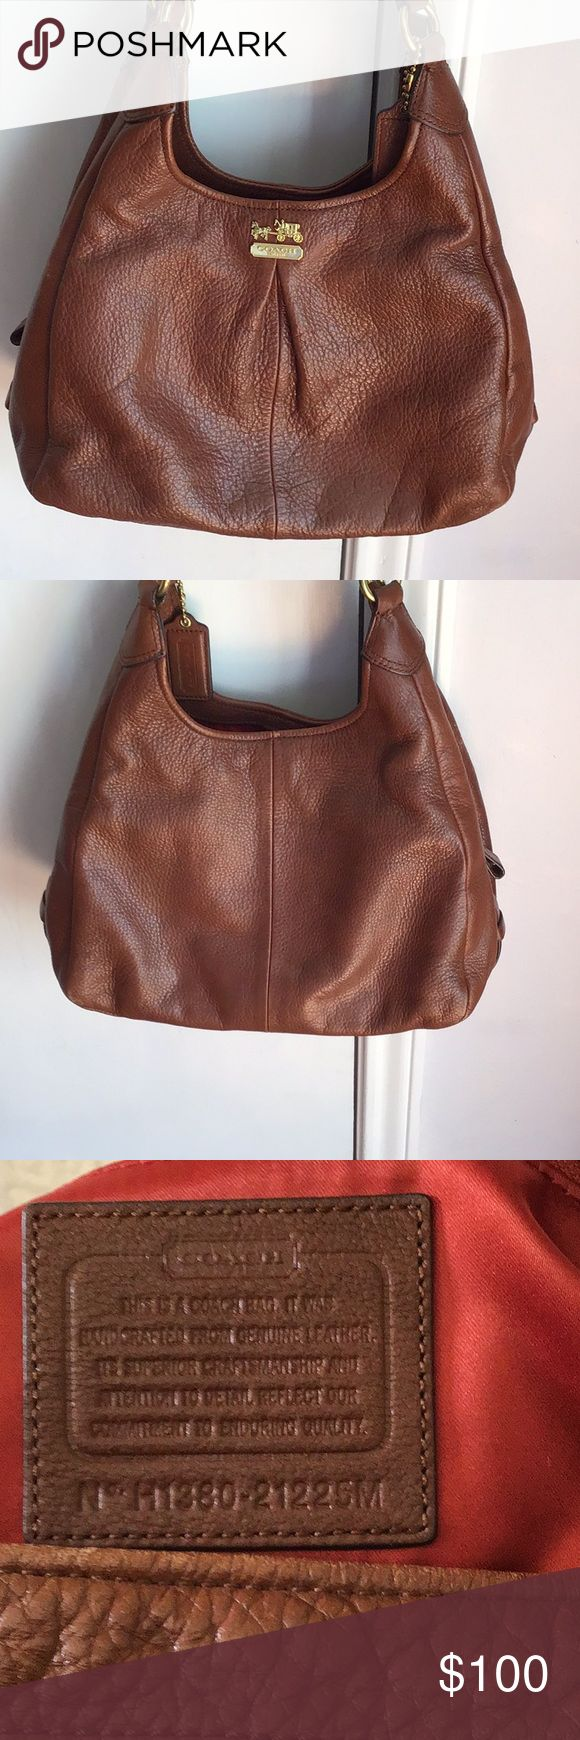 """Authentic Coach Bag (Rich Dark Tan Color) Lots of wonderful features with two extra compartments on each side of main compartment. Zipper closure in center and magnetic closure on two side compartments.  In great condition. Gently used.  Measures 14"""" wide by 12"""" height. Coach Bags"""